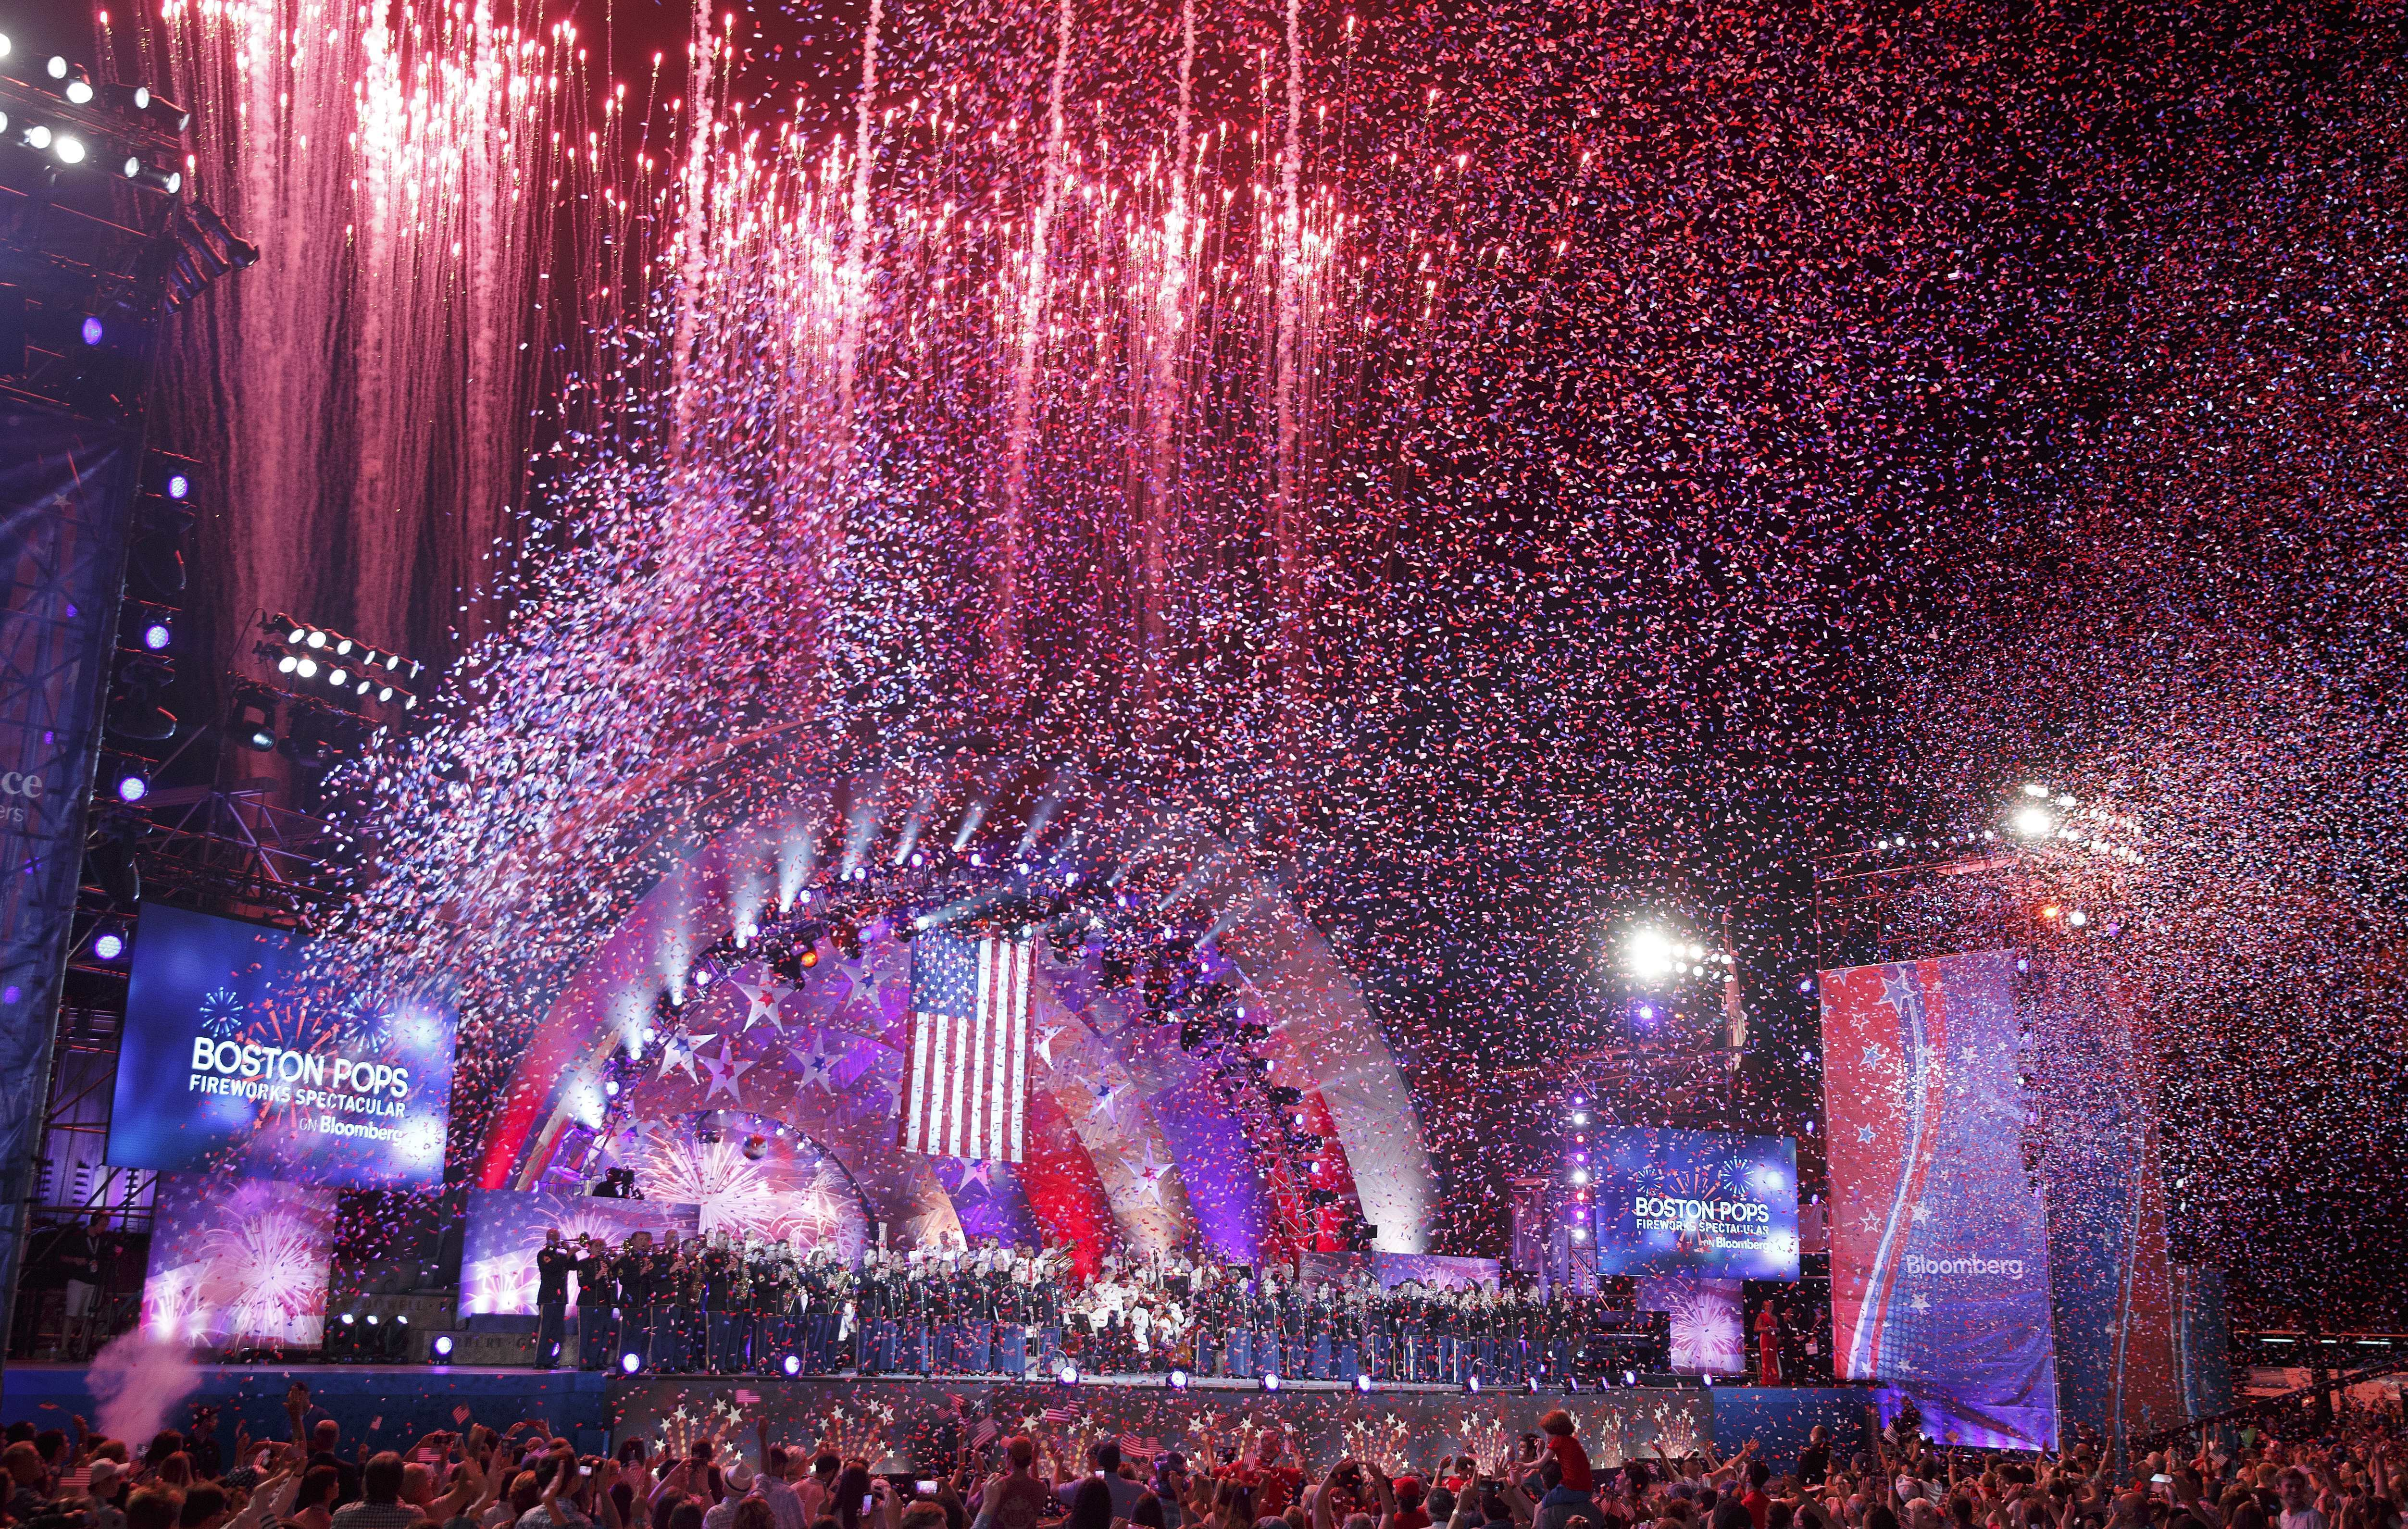 July 4th fireworks: Where will the weather be best for the